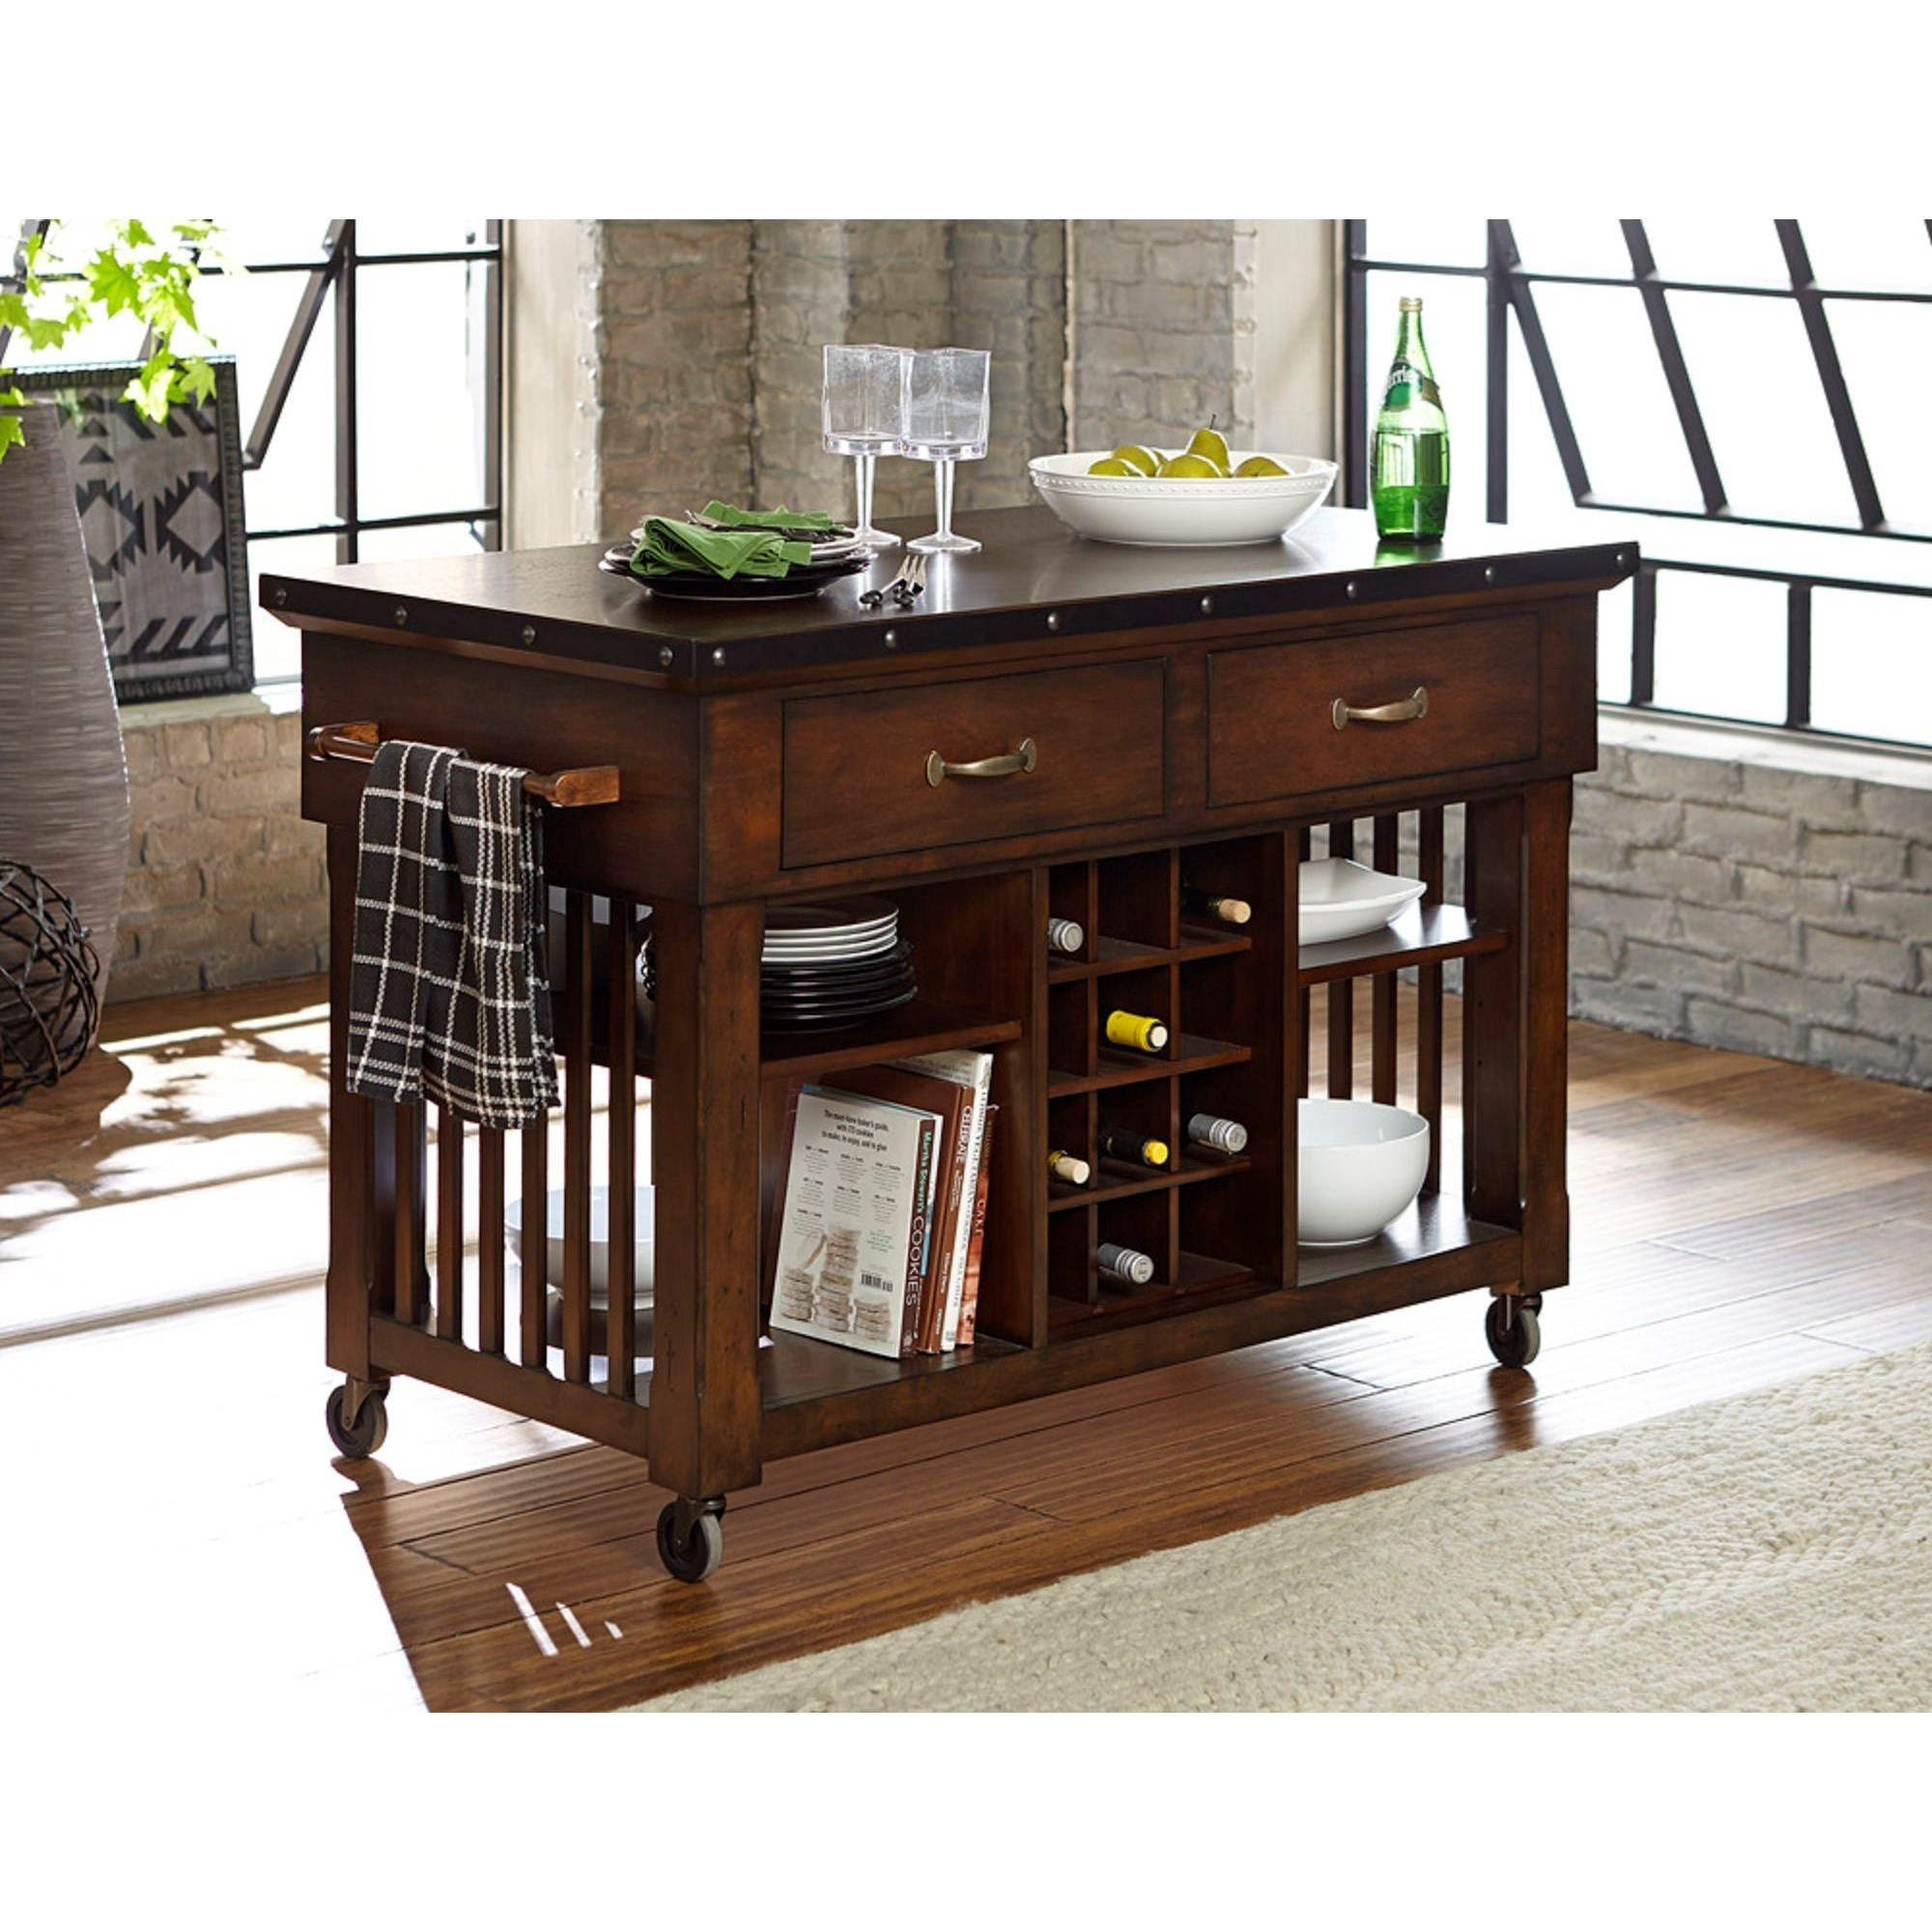 Kitchen island cart industrial Iron Schleiger Industrial Kitchen Island Cart With Metal Trim And Decorative Nail Heads By Homelegance Fisher Home Furnishings Homelegance Schleiger Industrial Kitchen Island Cart With Metal Trim